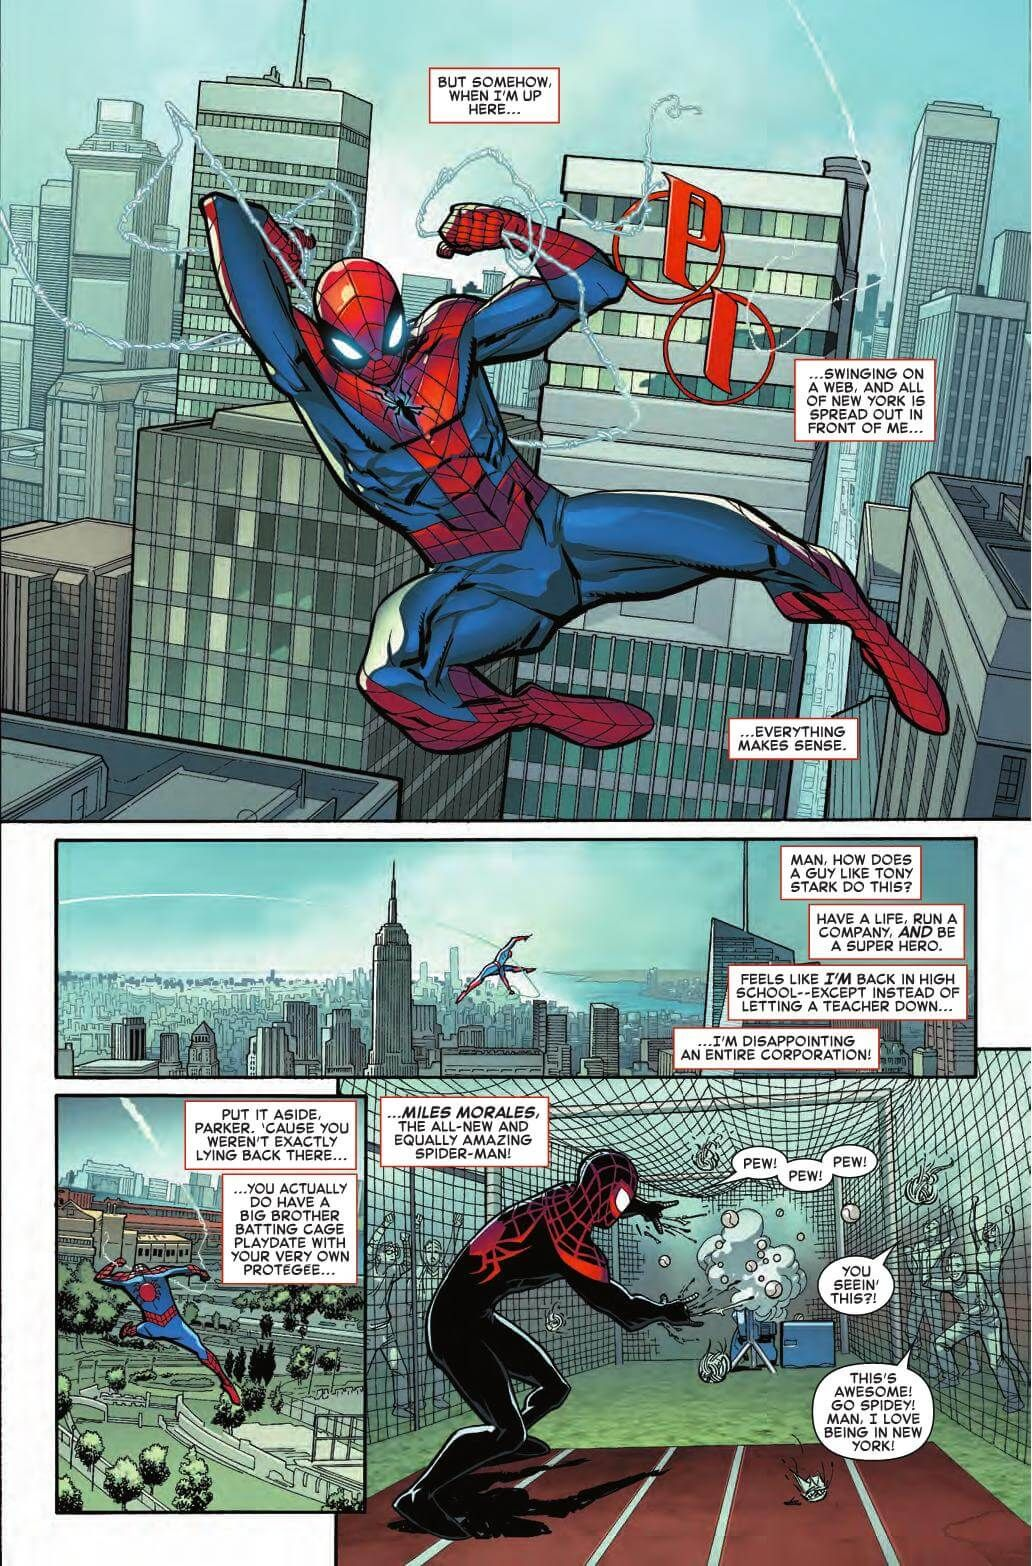 The Amazing Spider-Man #13, Marvel // Dan Slott.